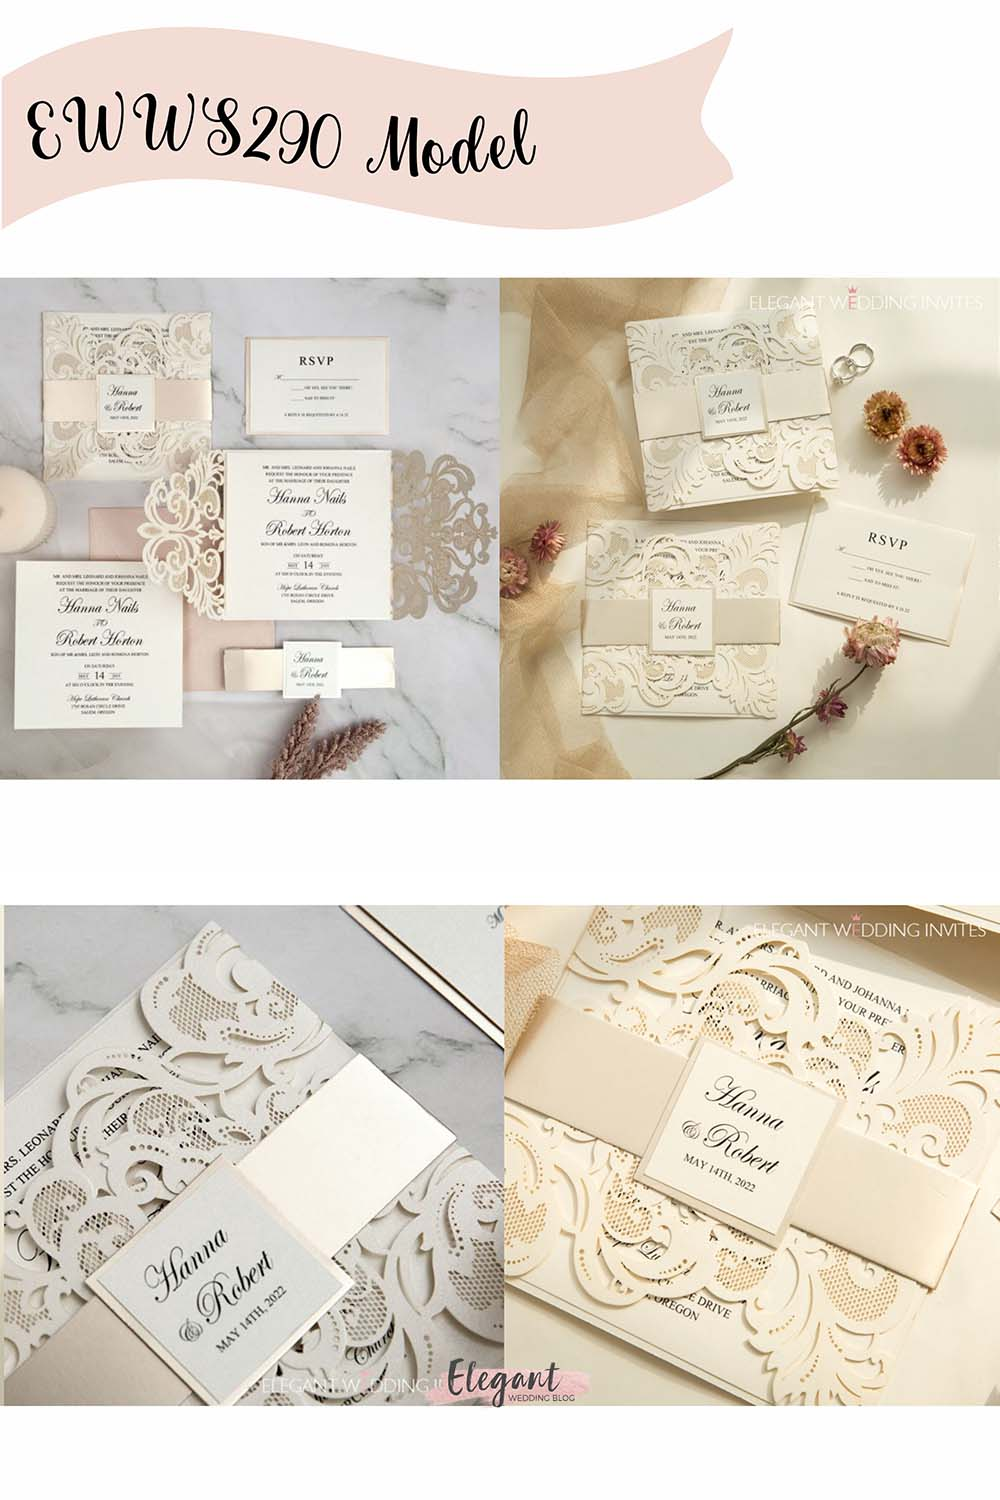 classy ivory laser cut wedding invitations with mirror belly band and tag EWWS290 1